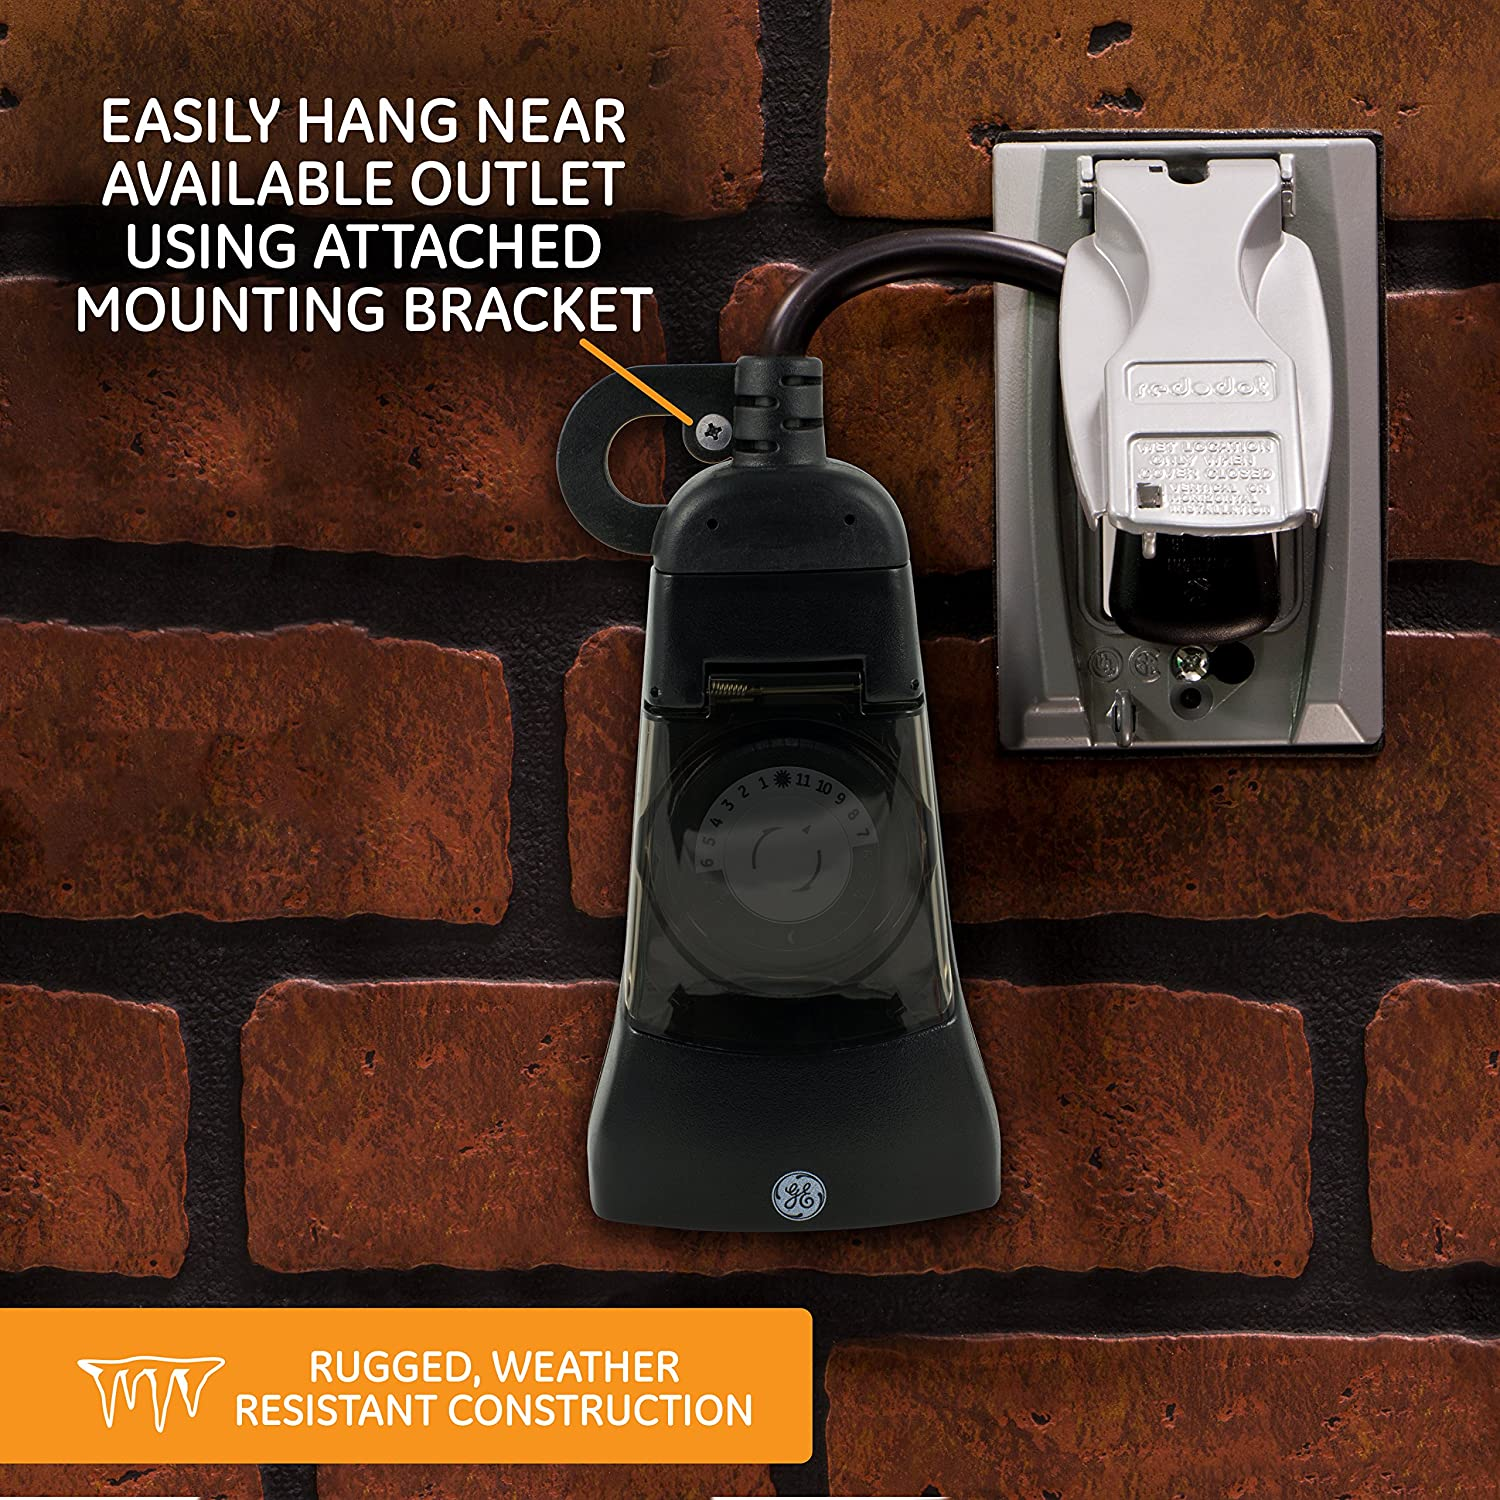 30 Minute Intervals GE 24-Hour Indoor//Outdoor Programmable Mechanical Timer 2 Grounded Outlets 15138 Dual Outlet Plug-In Heavy Duty Weather Resistant